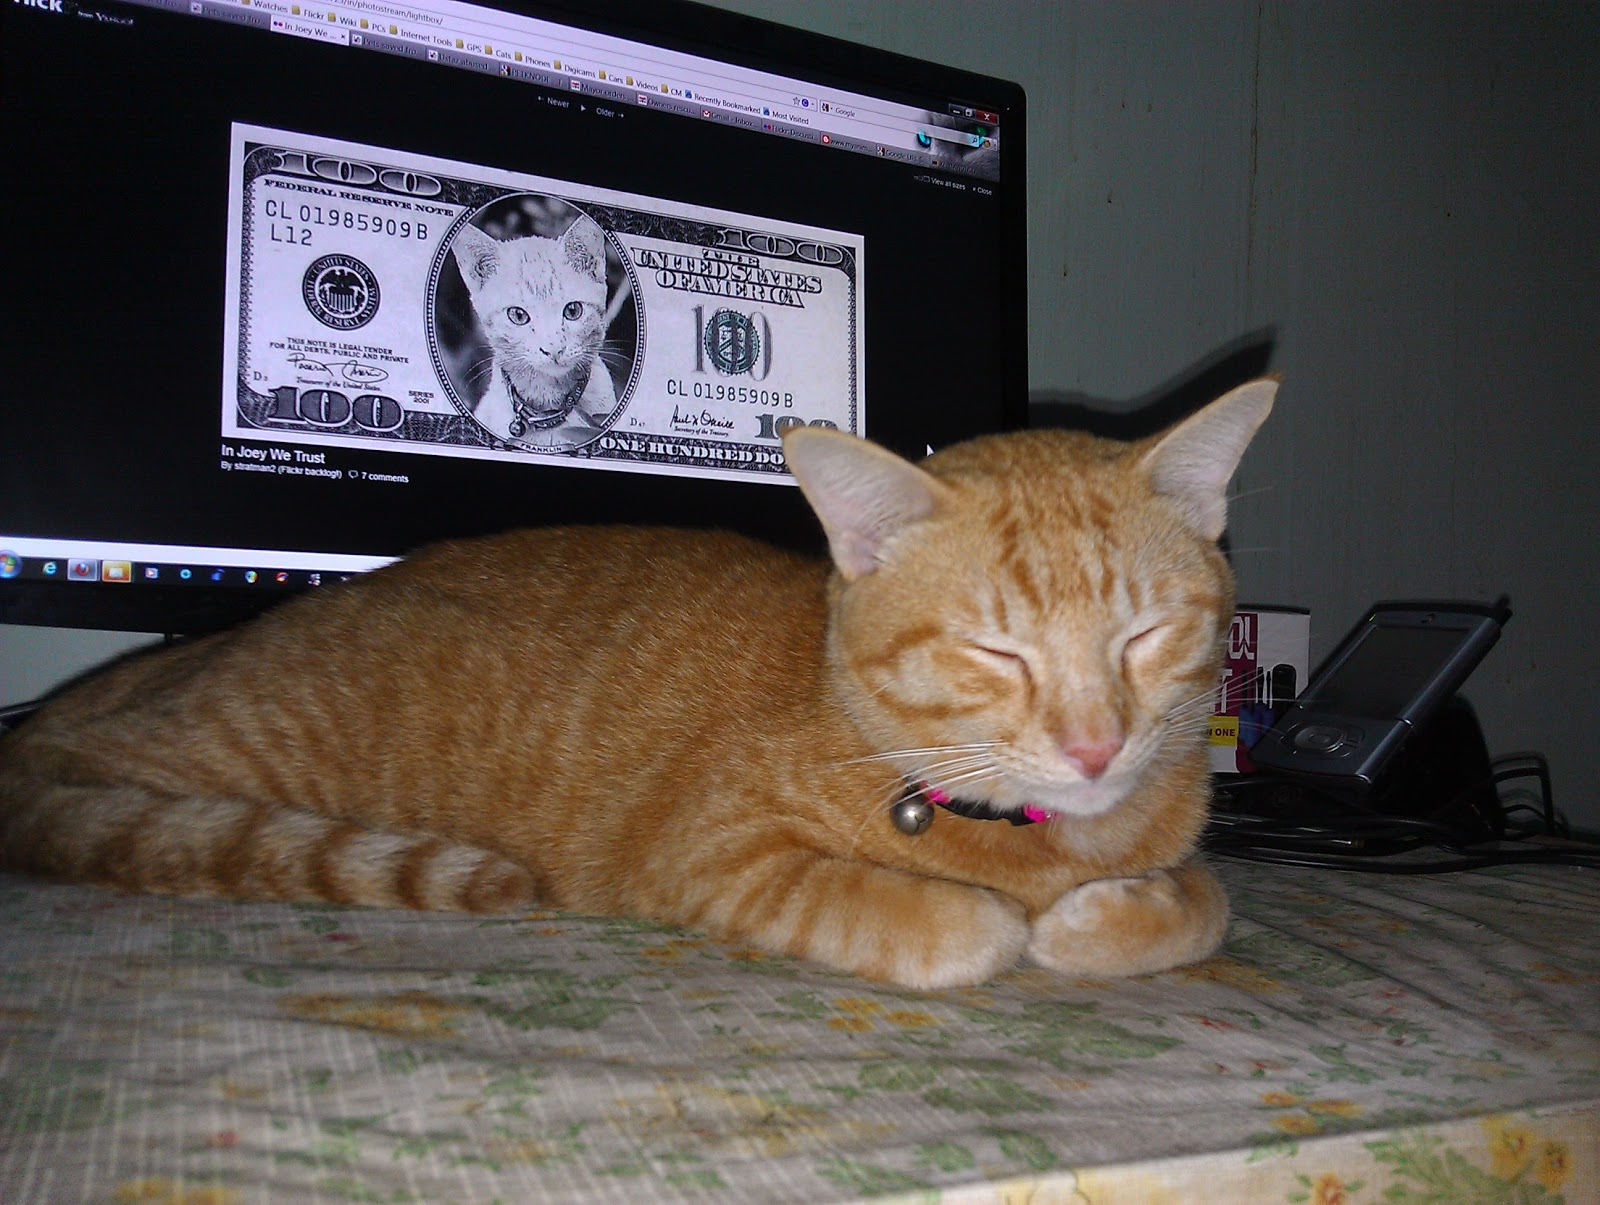 LEMME GIT DIS STRAIGHT. U PUT MAH FACE ON $100 BILL, HAD ME FIXD AN TRIMMD MAH CLAWS. AN NAO U WANTS ME 2 SMILE 4 U? HOOMAN, I DOAN FINKZ SO! by stratman² (2 many pix!) from flickr (CC-NC-ND)